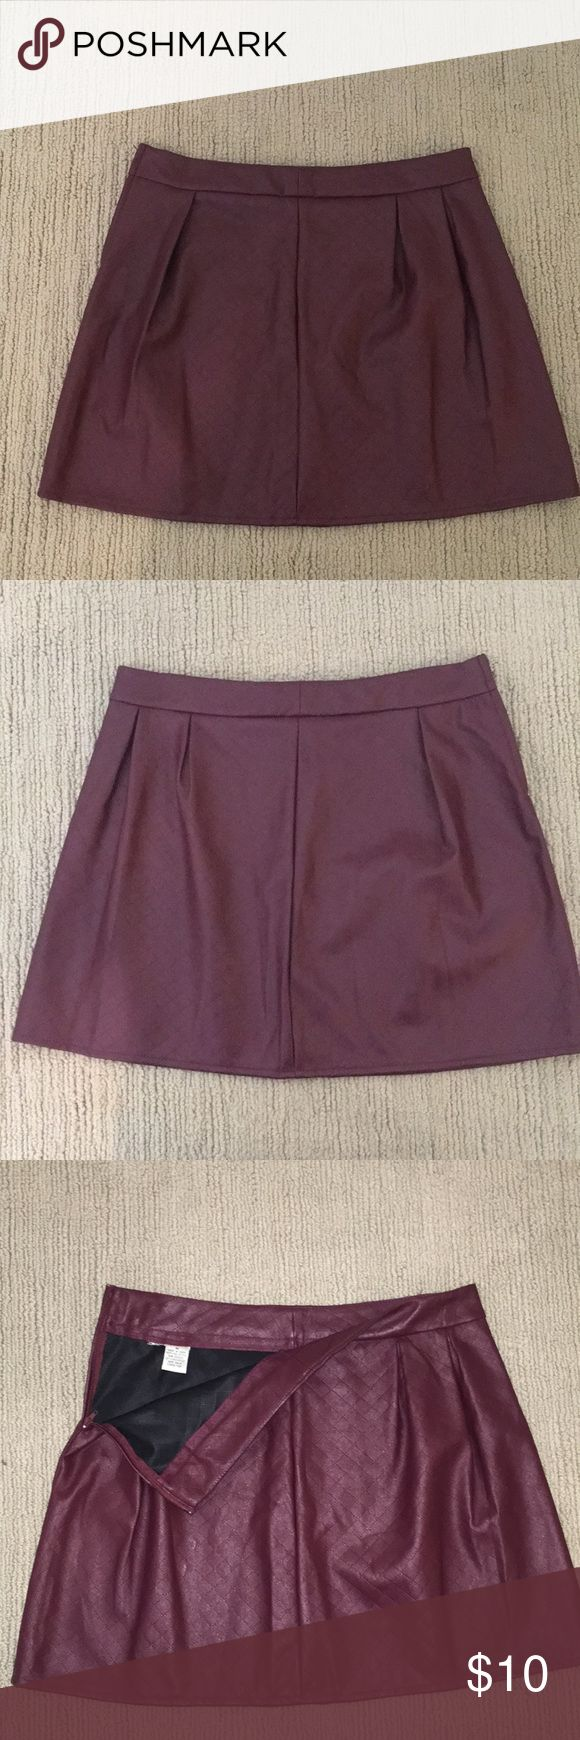 """Mimi Chica faux leather maroon skirt Faux leather maroon skirt! Great to dress up or down to the occasion. There was a larger tag, but it was itchy so I cut it off. The smaller tag (pictured) shows the brand name Mimi Chica. Bought at Nordstrom, only worn once. Goes about mid-thigh length for me, and I'm 5'11"""" Mimi Chica Skirts Mini"""